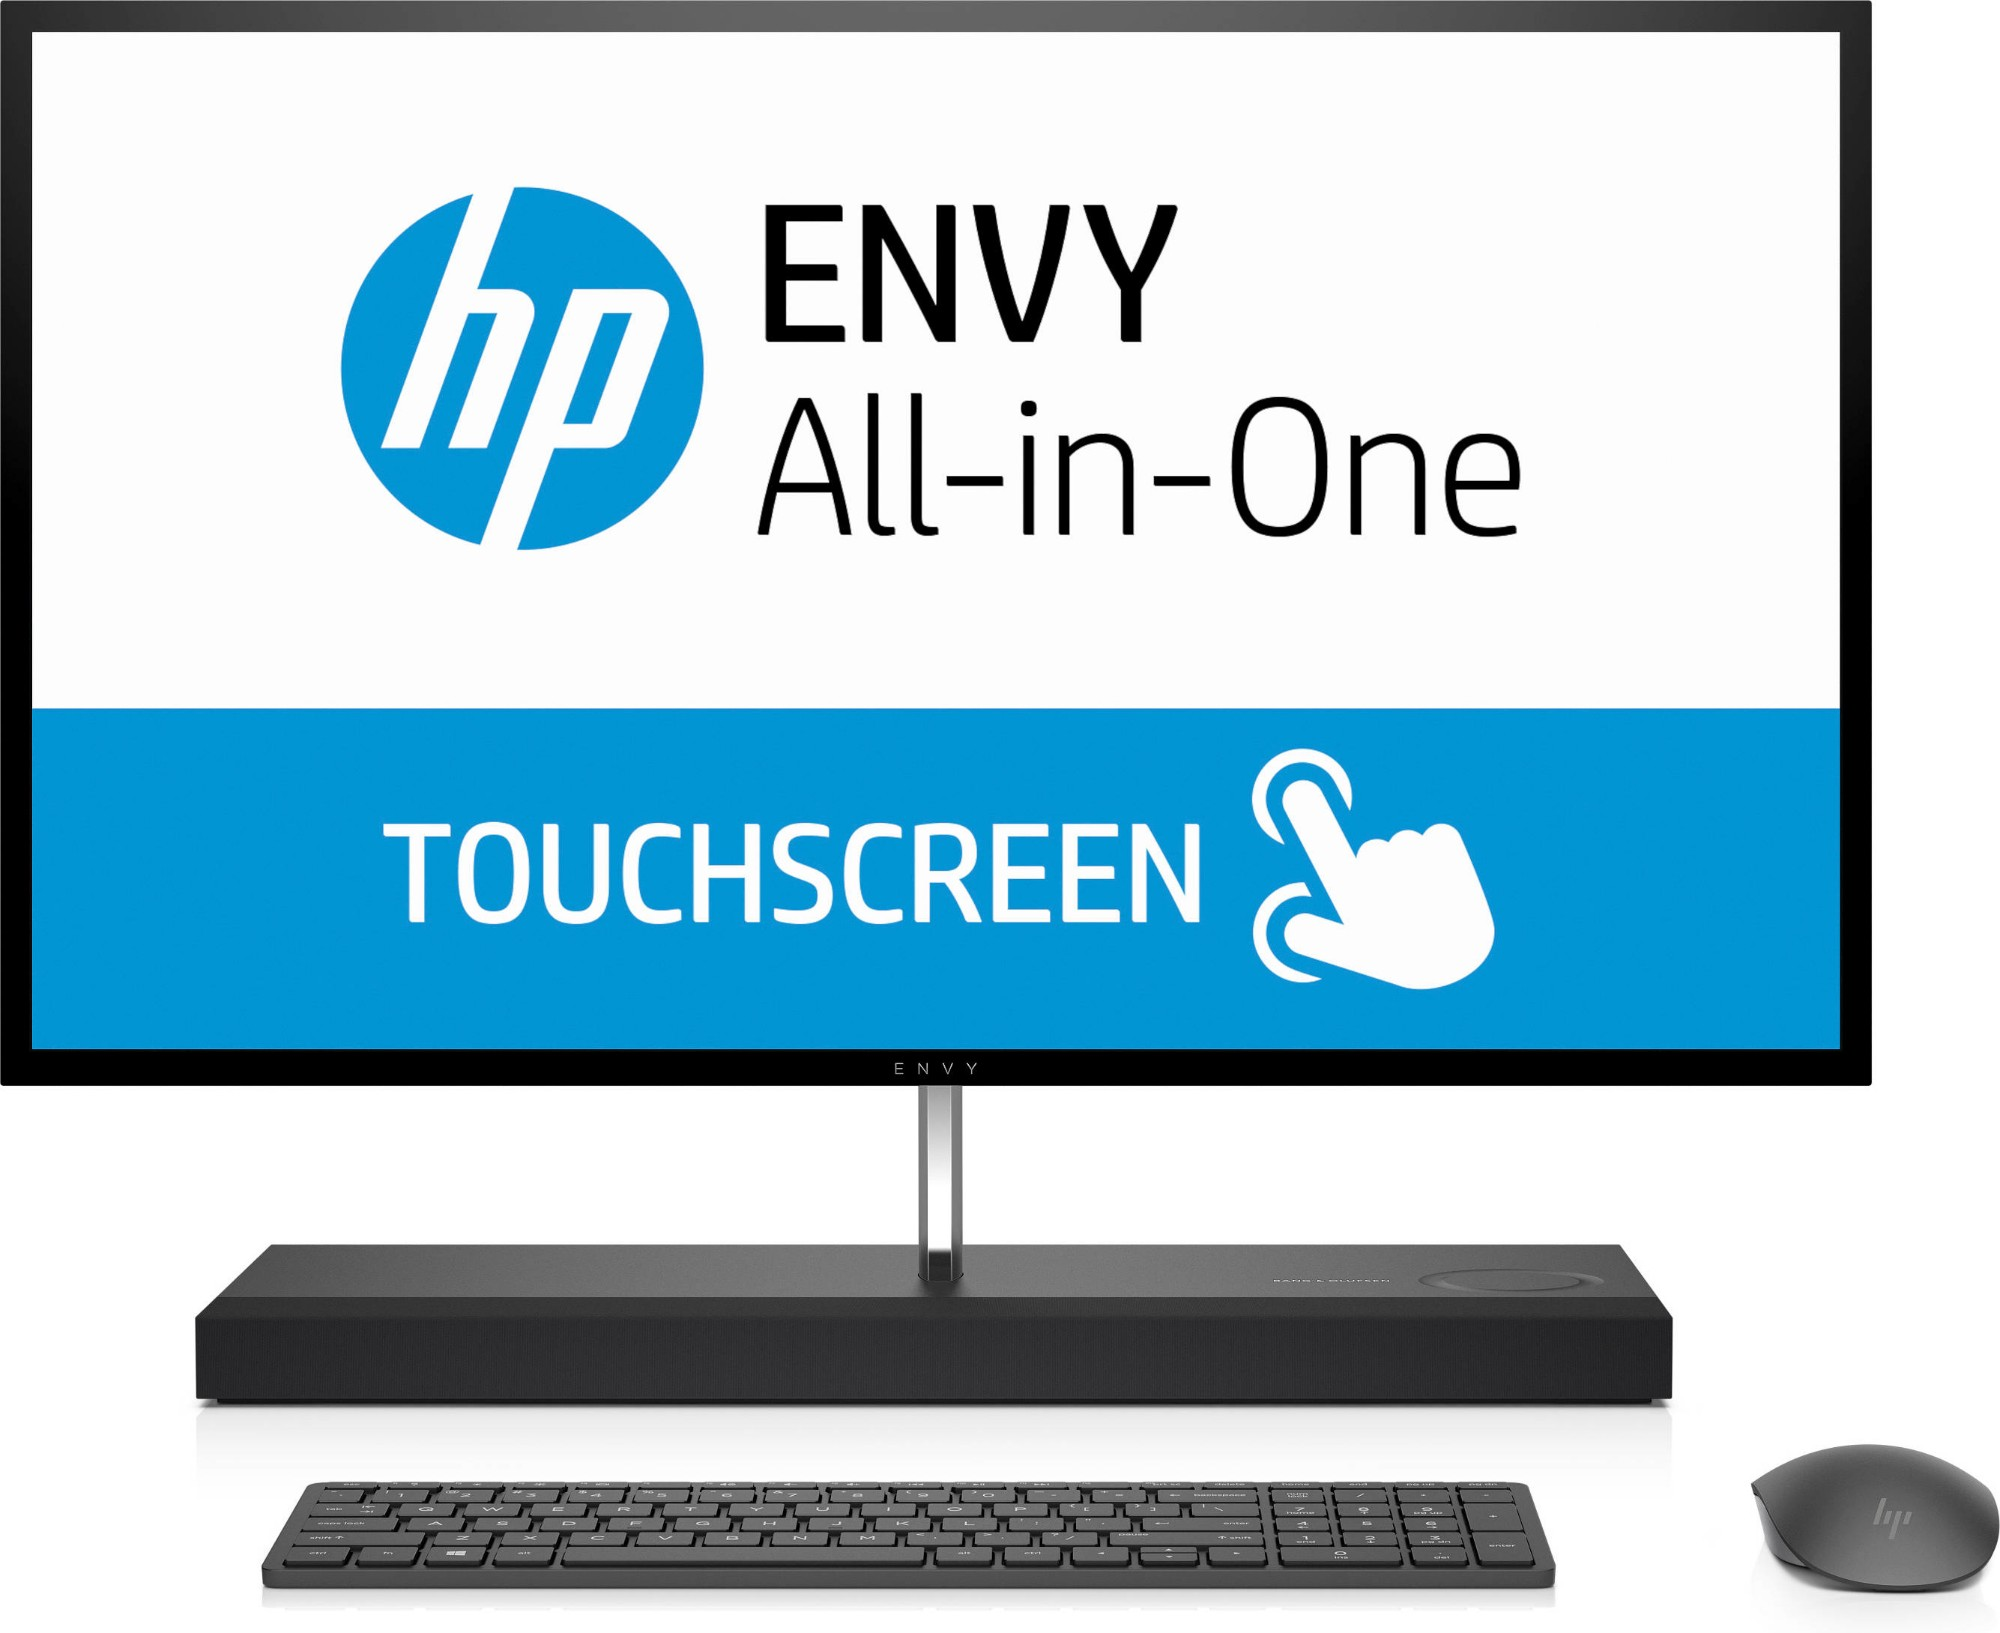 HP ENVY All-in-One - 27-b120